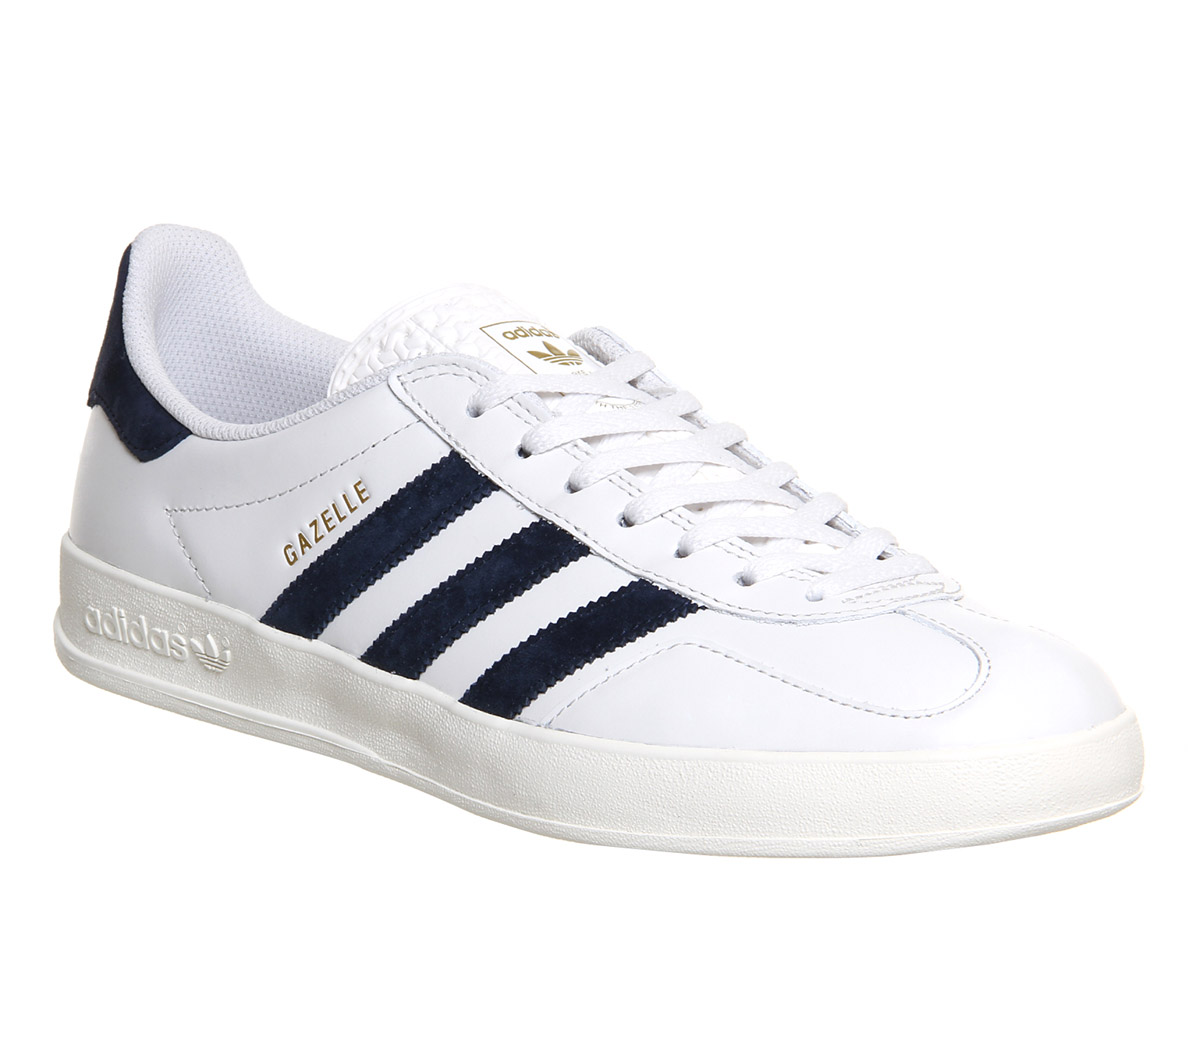 Adidas Gazzele Shoes